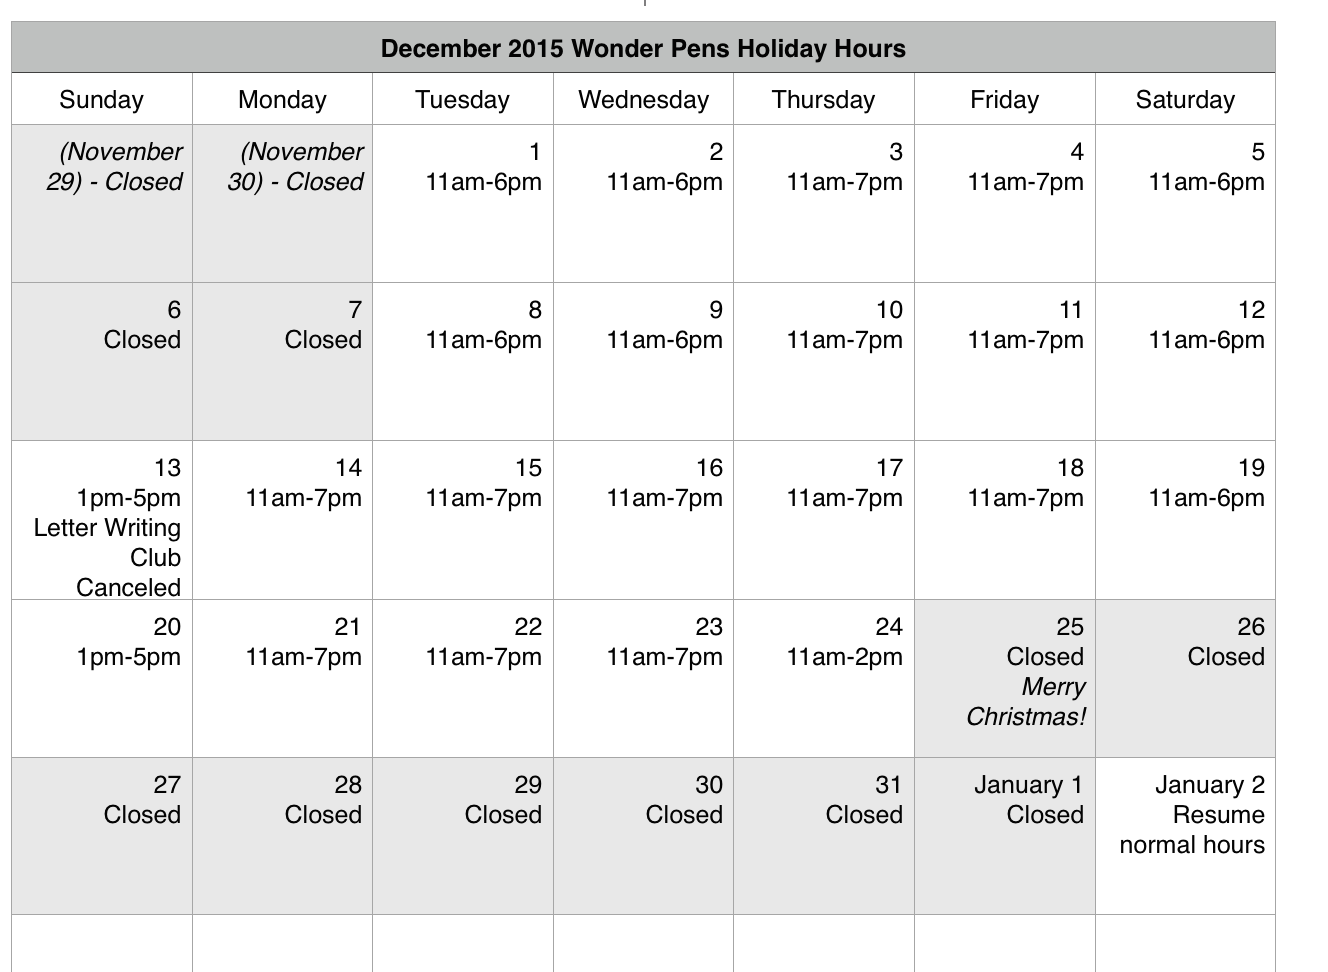 Holiday Hours Wonder Pens